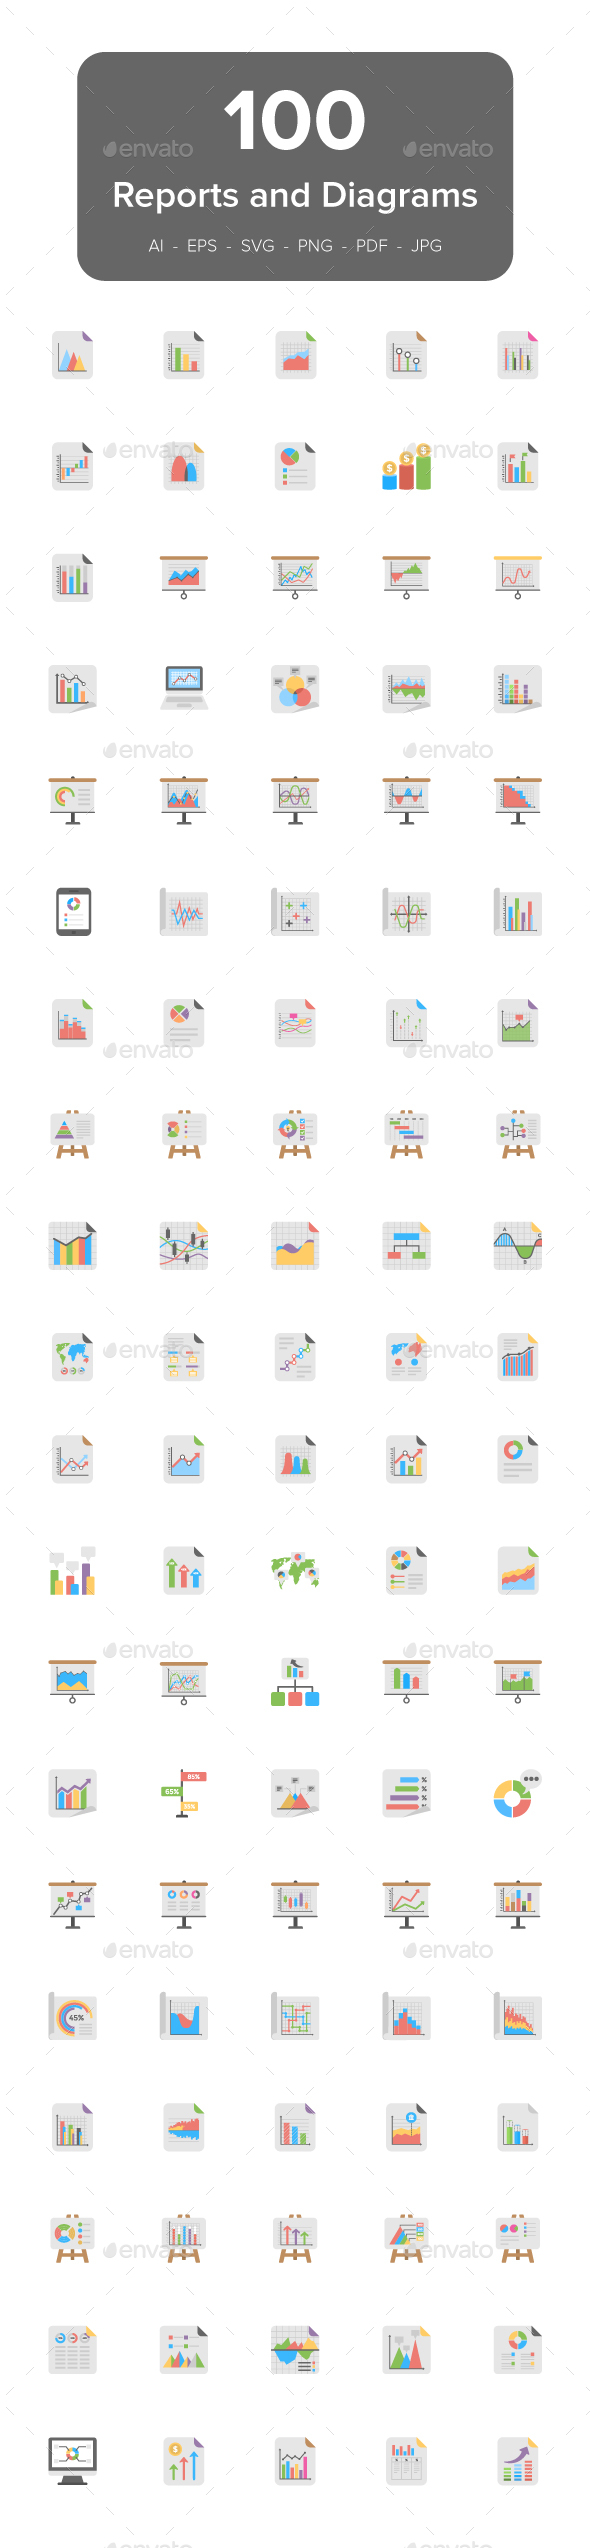 100 Reports and Diagrams Flat Icons - Icons